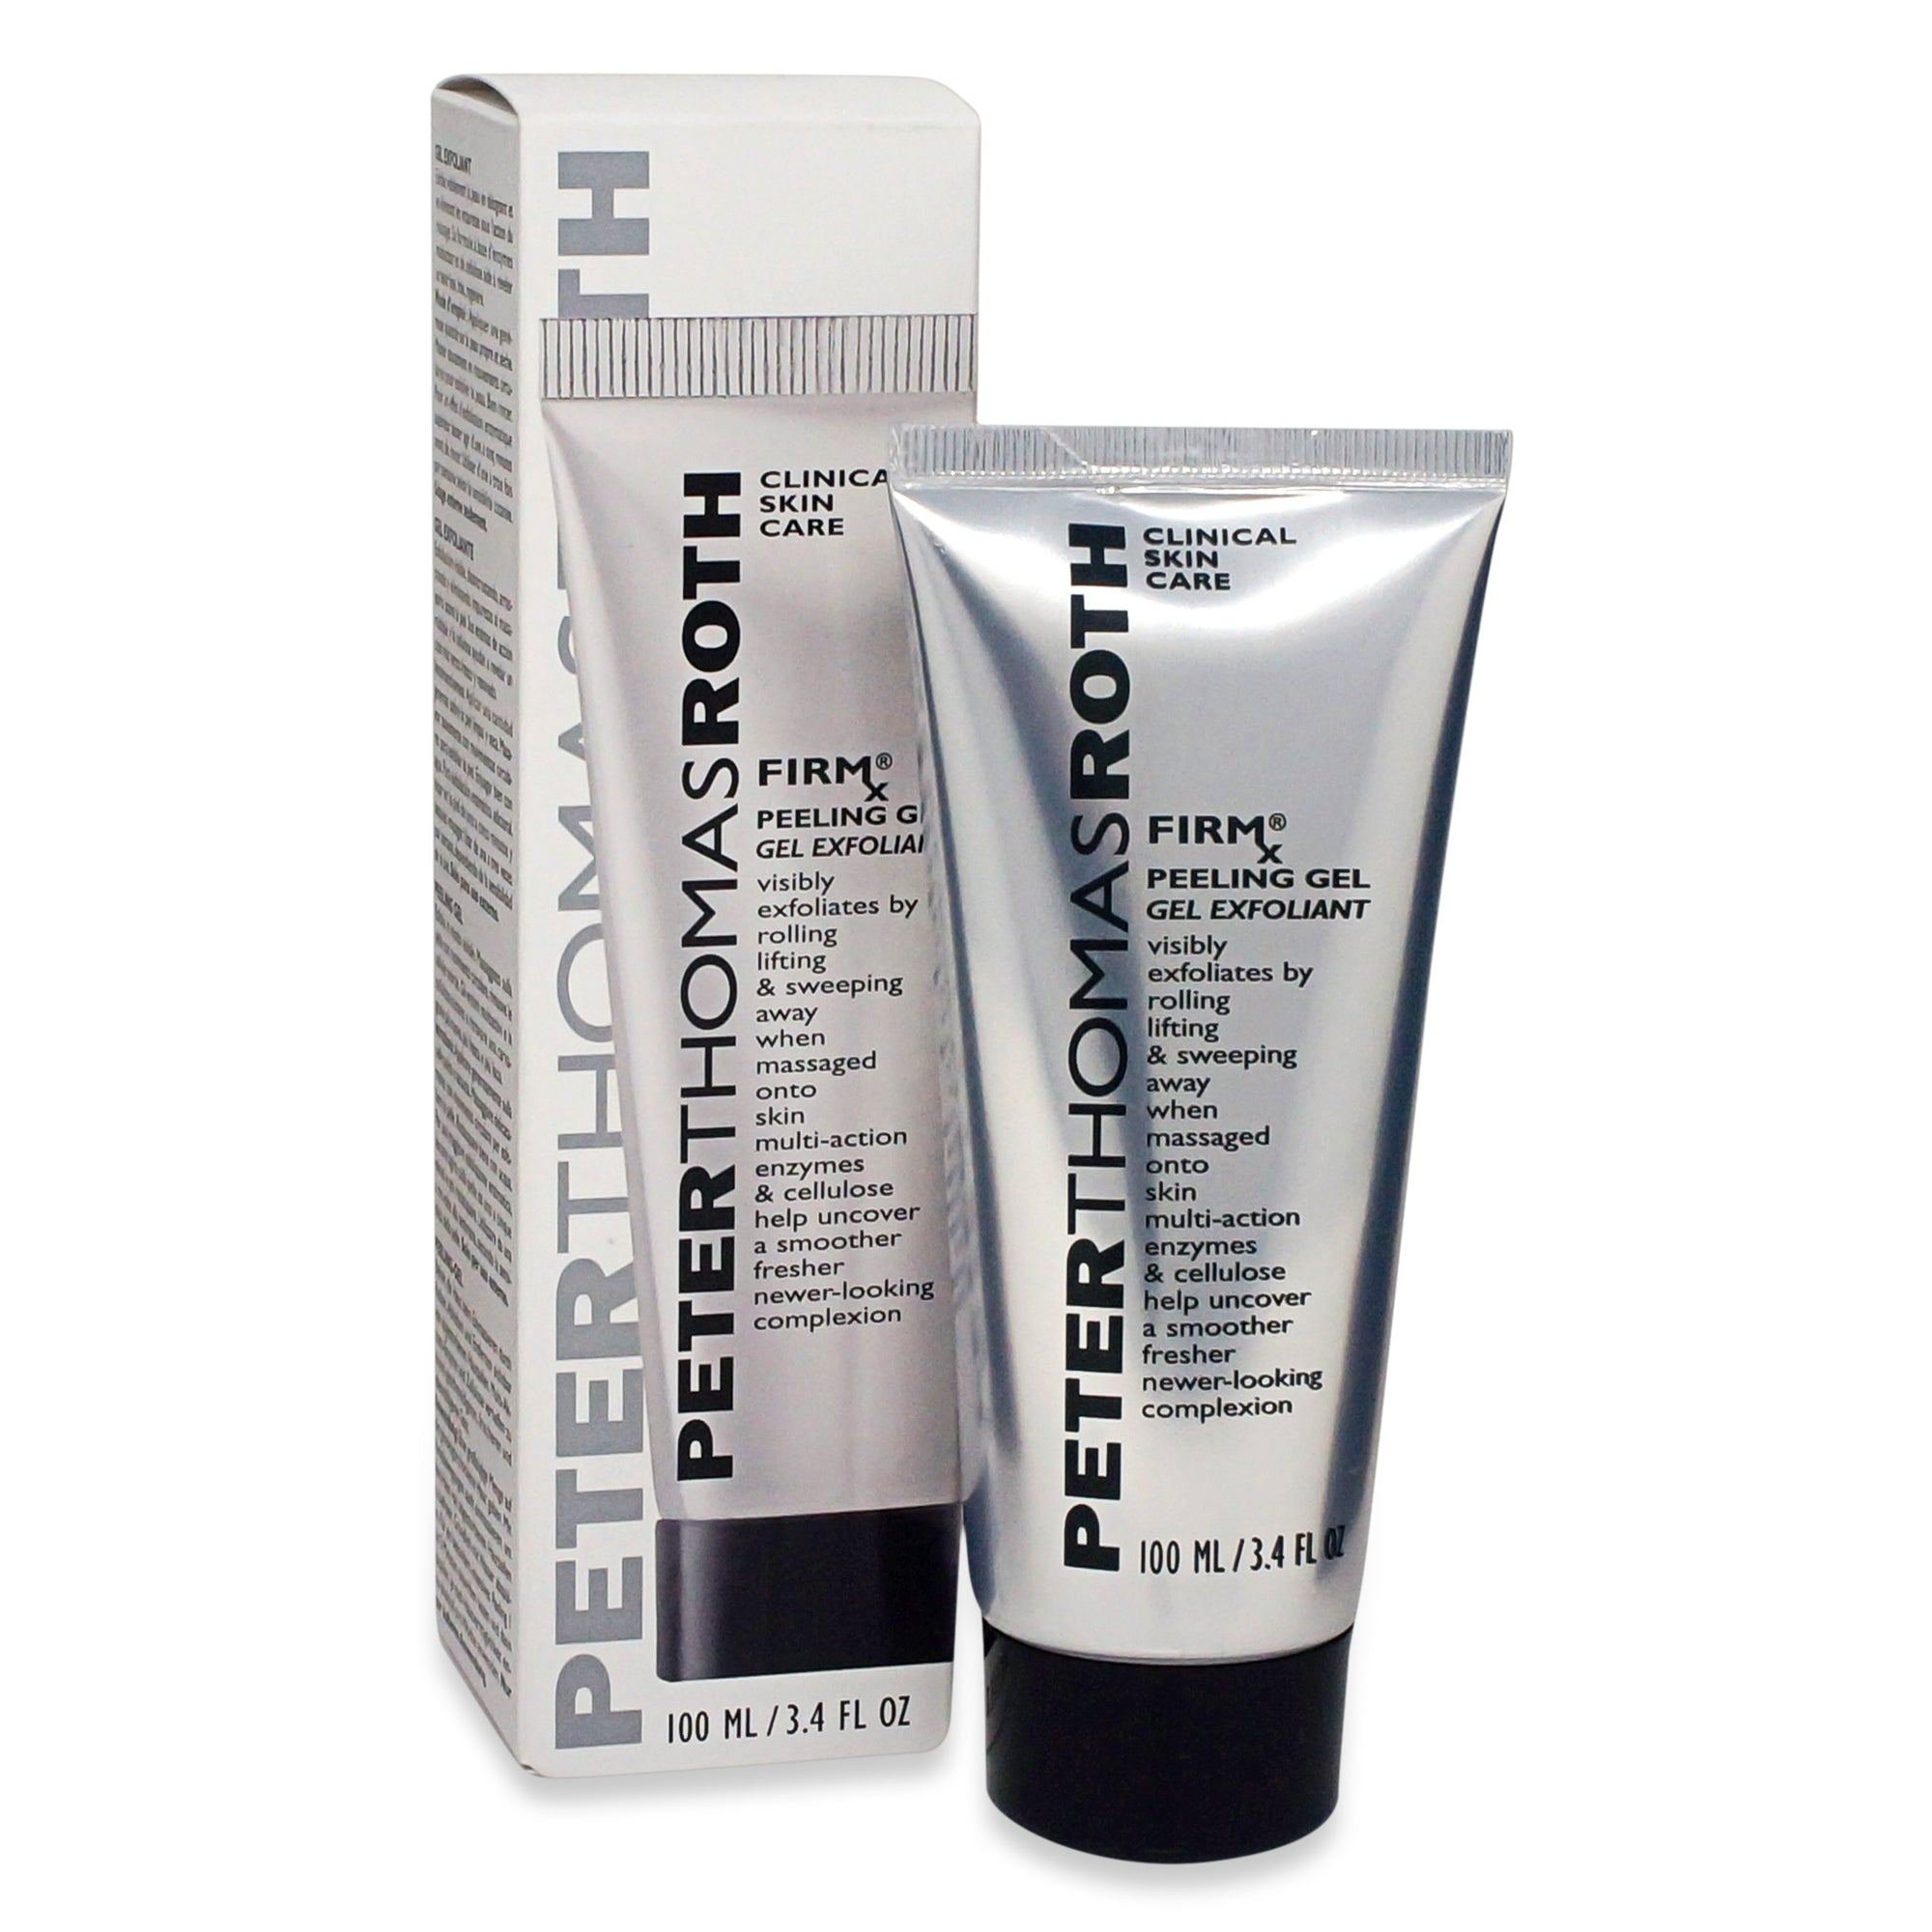 PETER THOMAS ROTH ~ FIRMX PEELING GEL ~ 3.4FL OZ